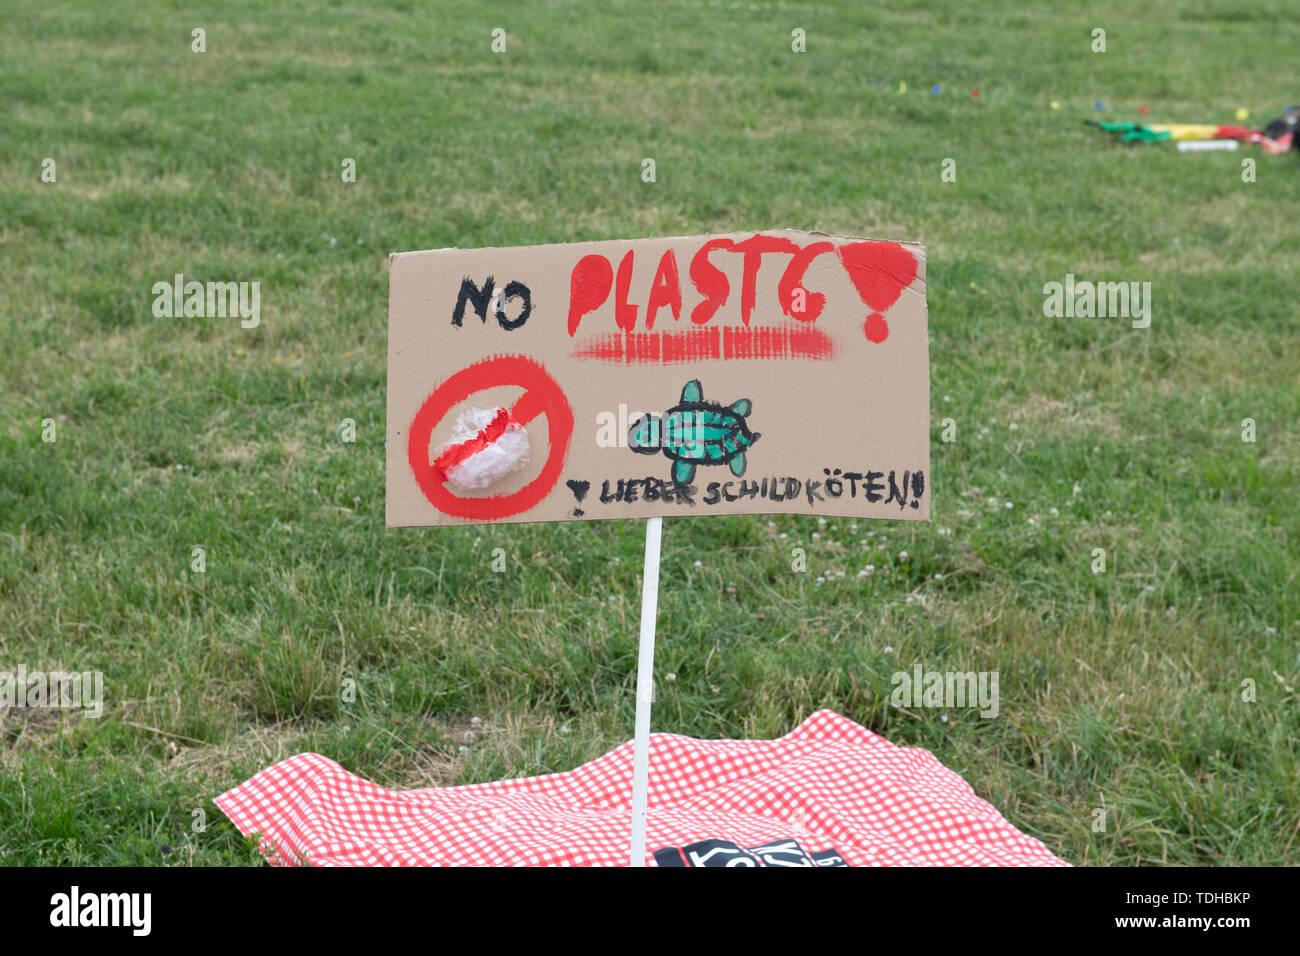 Berlin, Germany. 16th June, 2019. 'No plastic!' is written on the sign at the WWF Germany protest picnic against plastic rubbish that took place on the Tempelhofer Feld. Credit: Paul Zinken/dpa/Alamy Live News - Stock Image